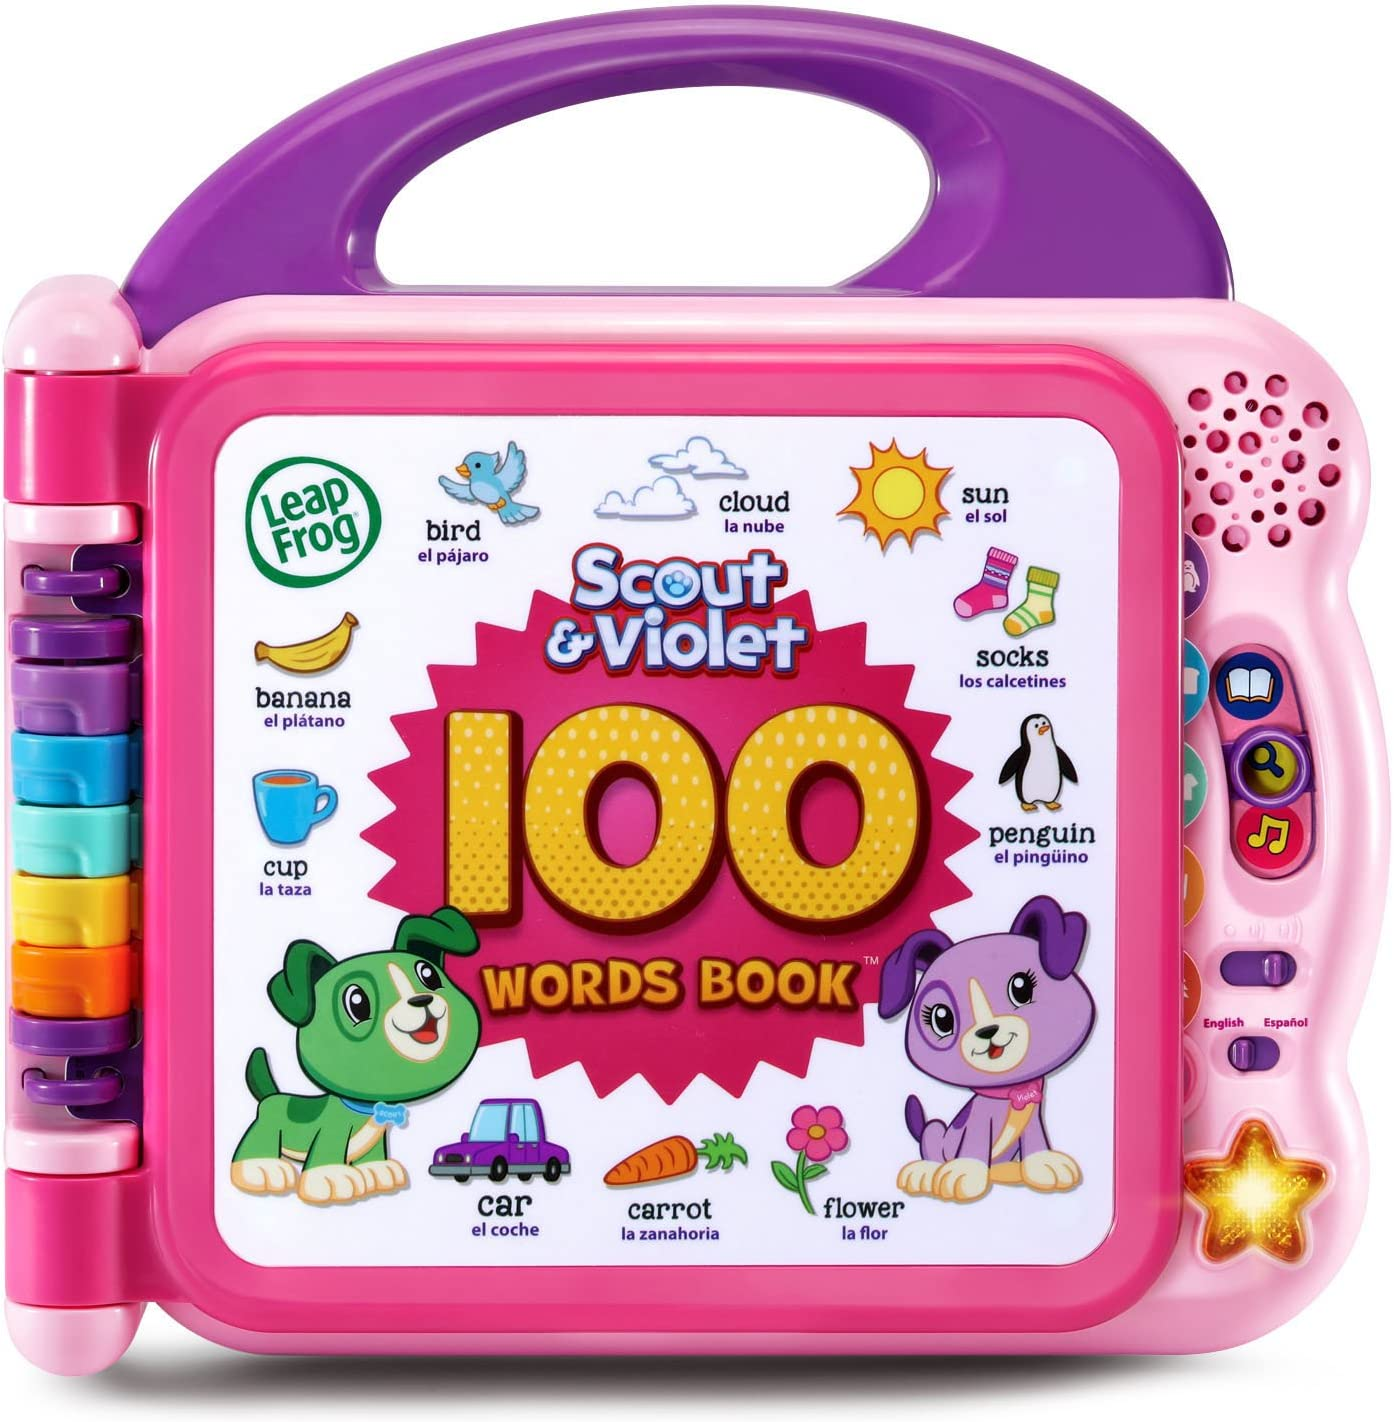 LeapFrog-Scout-and-Violet-100-Words-Book